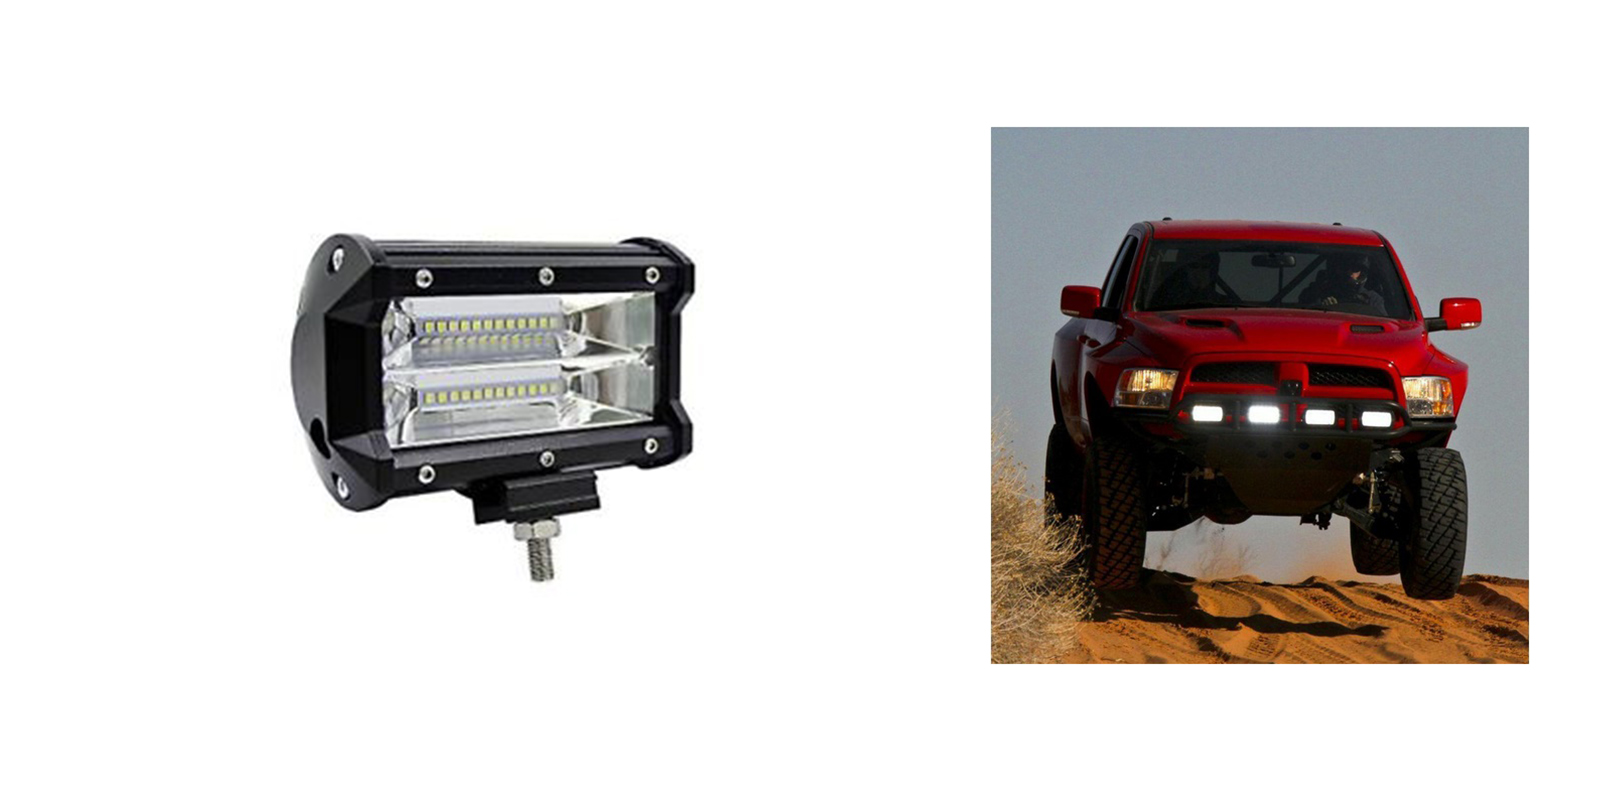 Faro led supplementare faro auto fuoristrada Suv rettangolare 24 led 72w